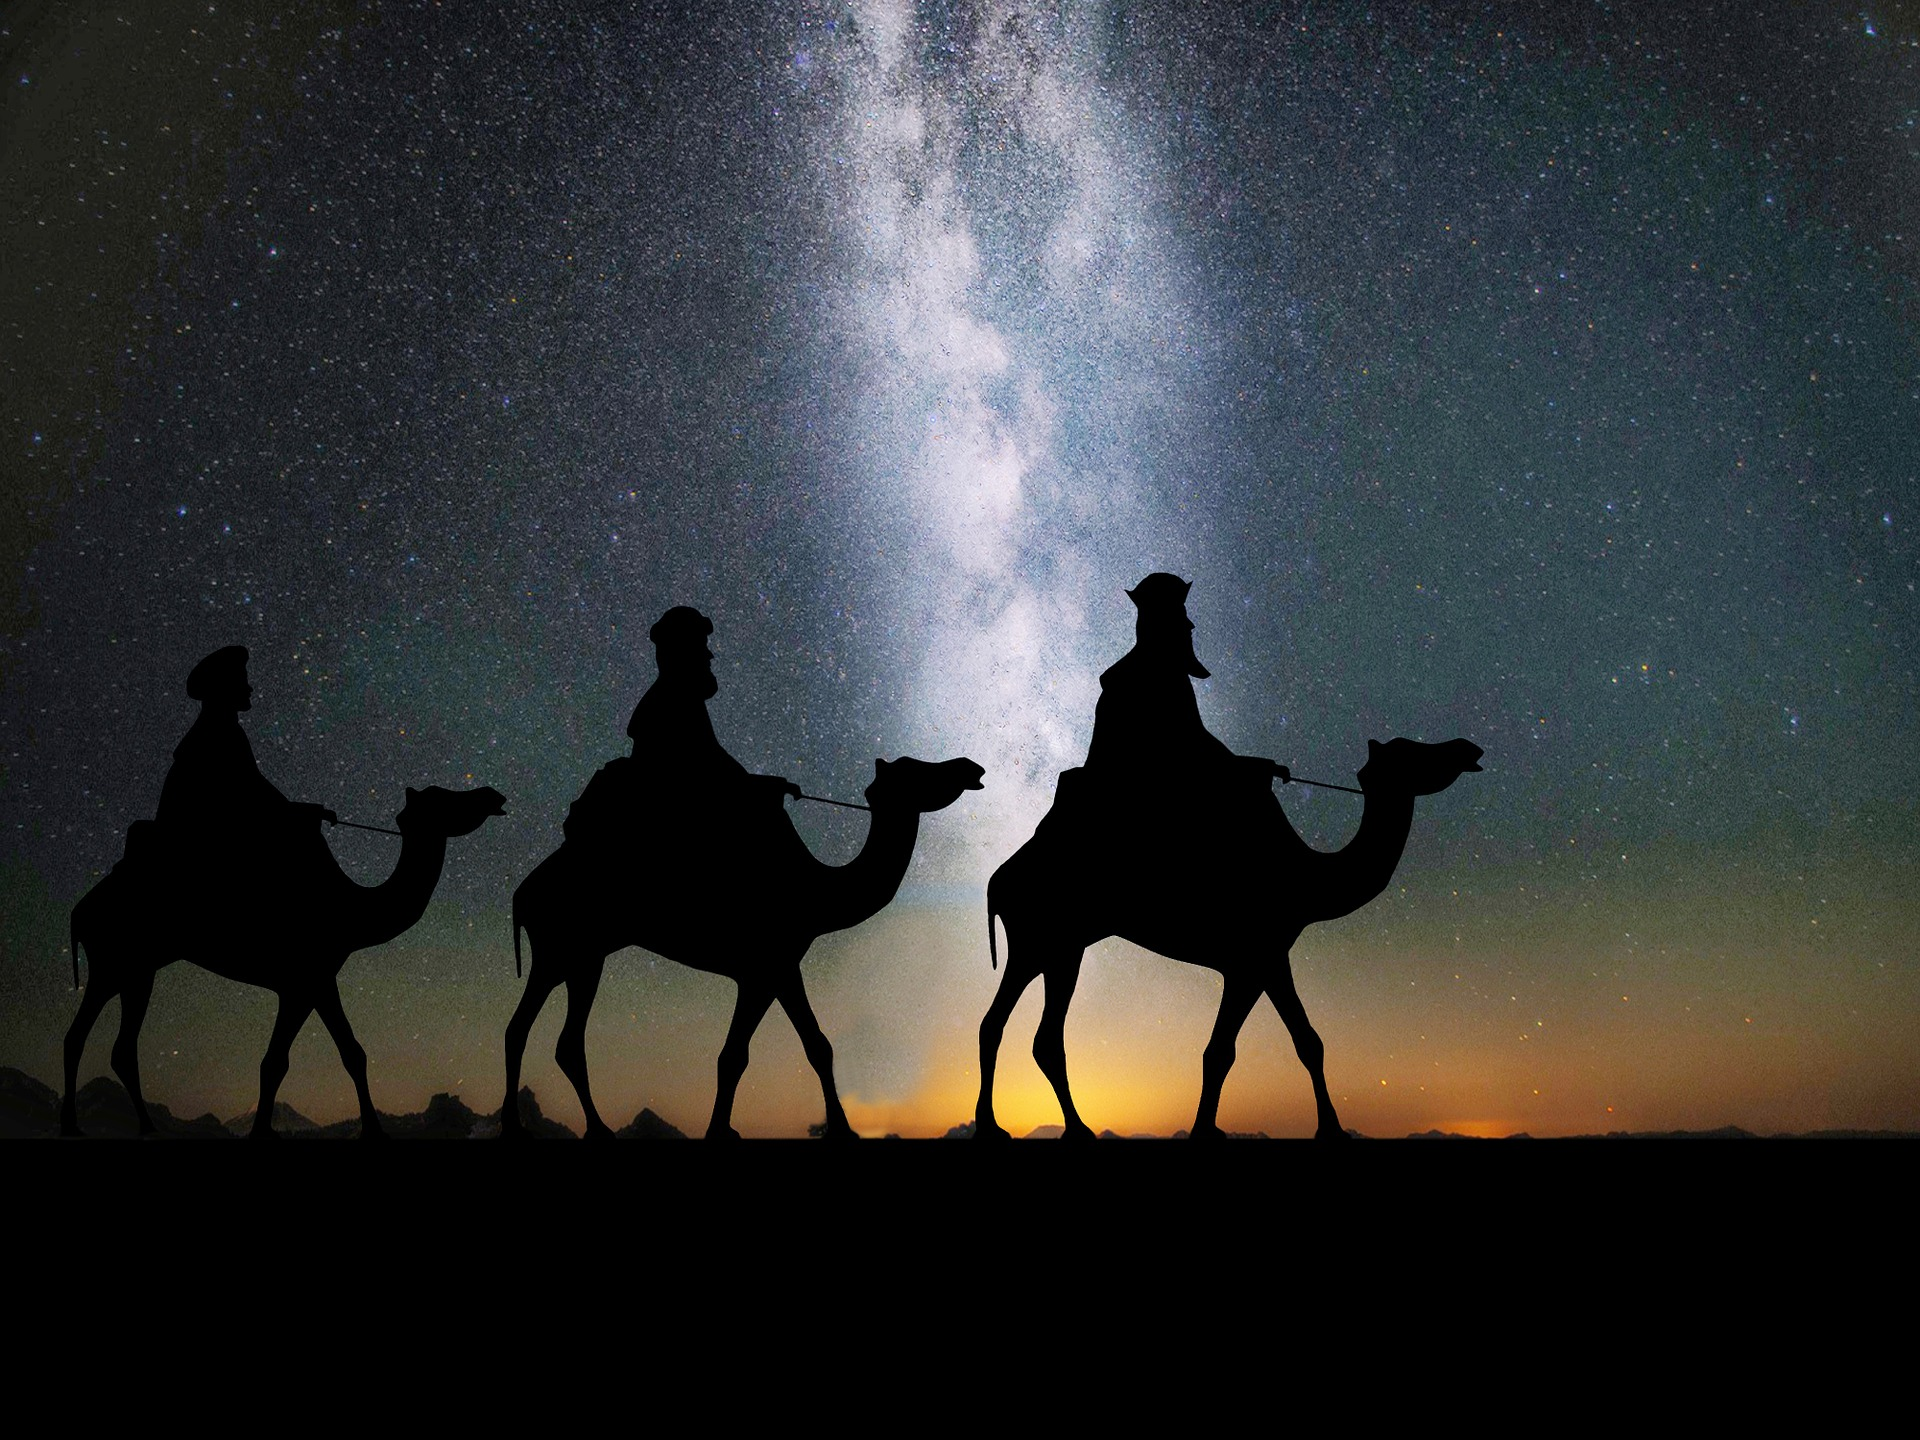 Preparation and Disruption: An Advent Reflection